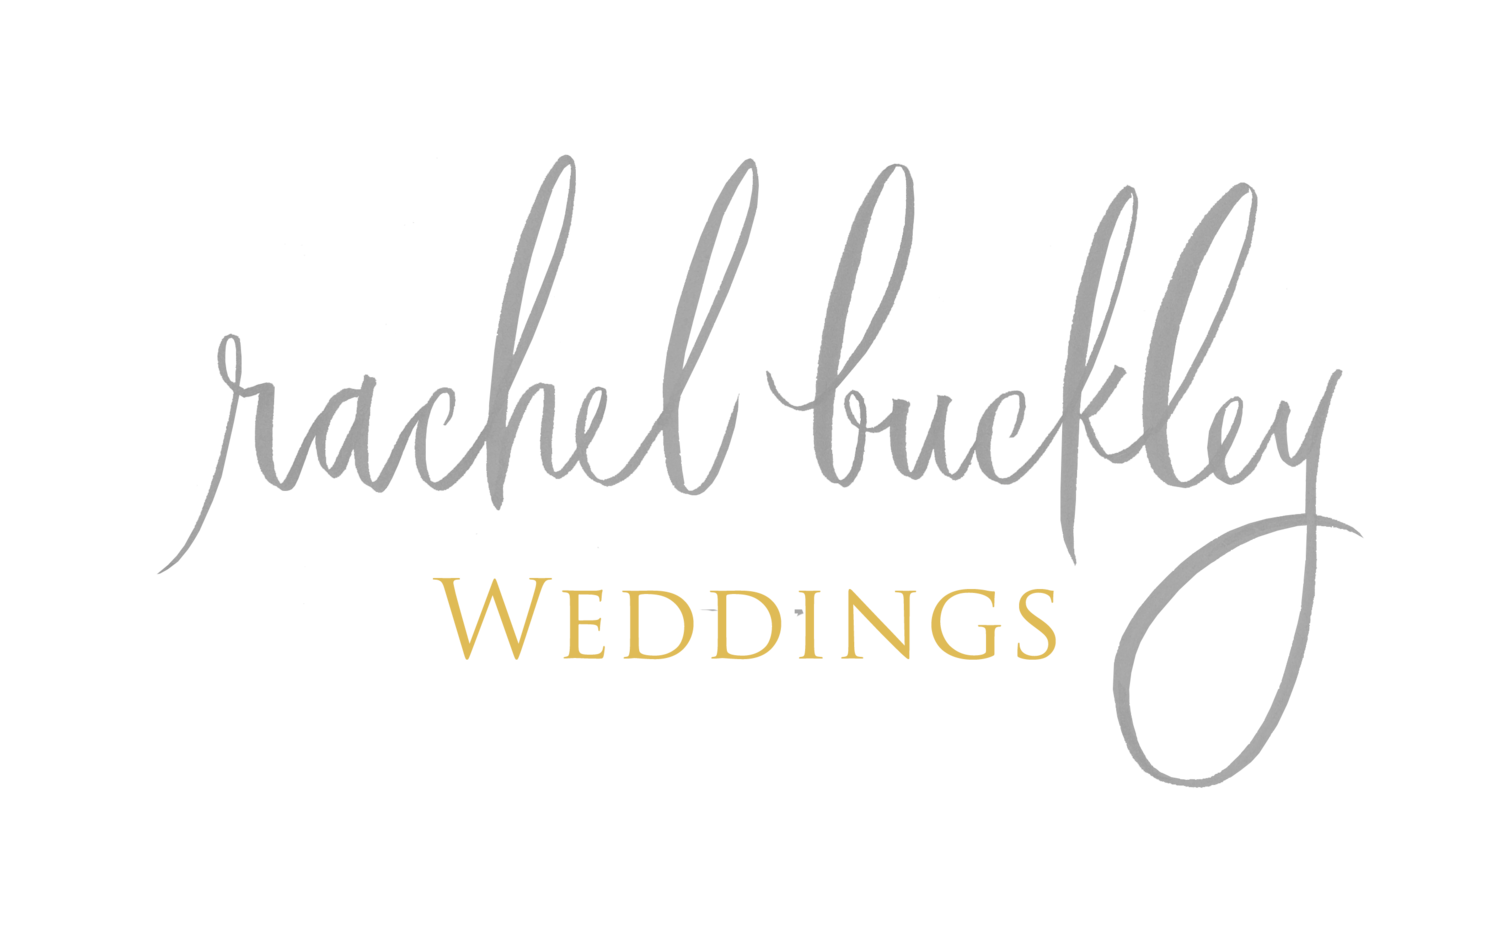 Rachel Buckley Weddings